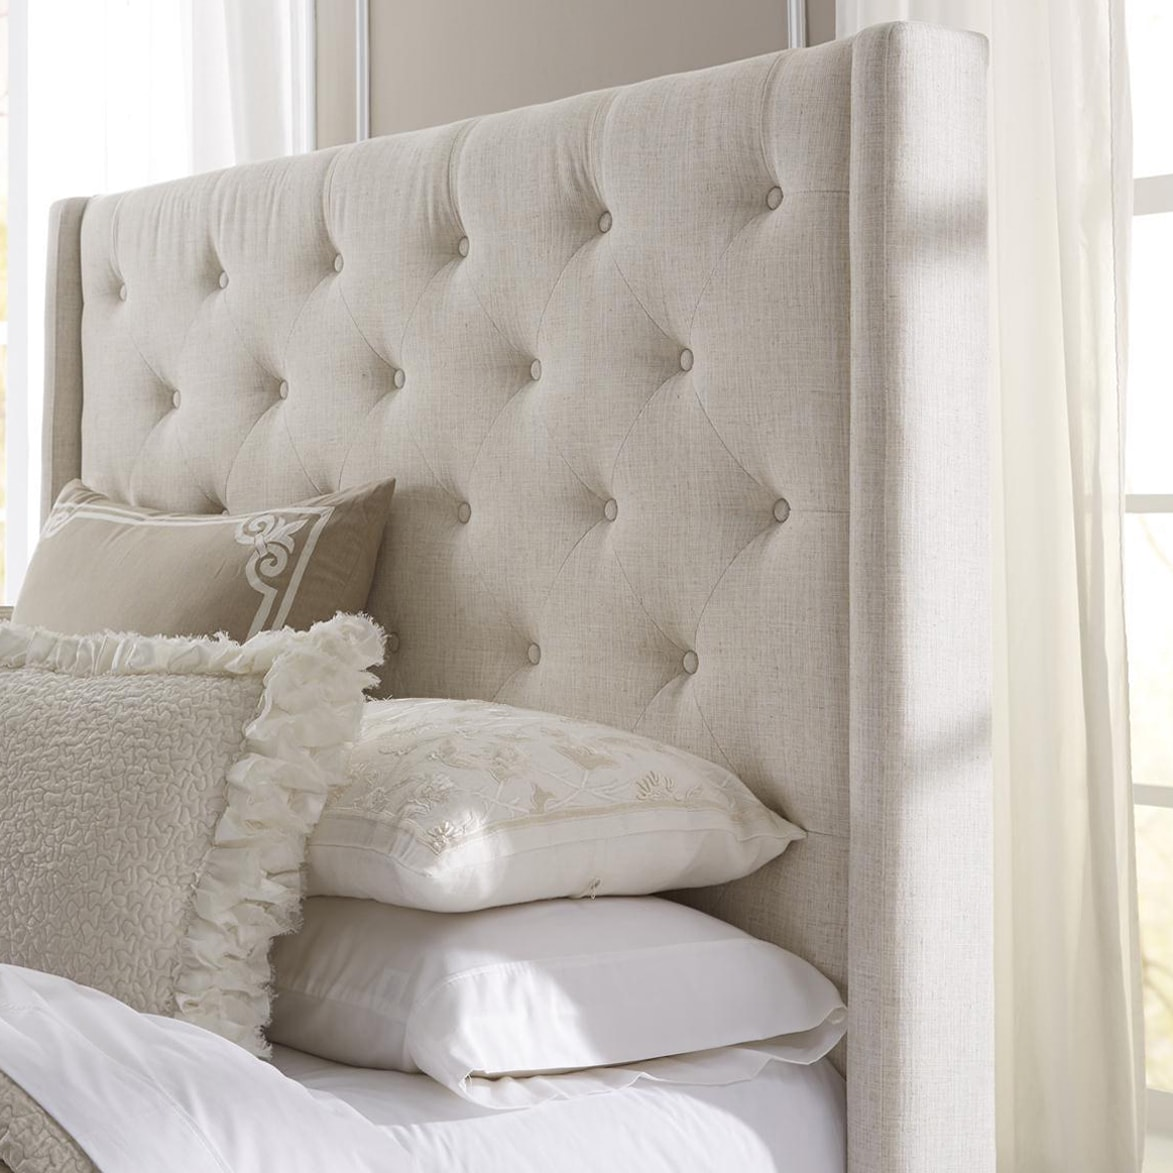 furniture bed grey size nailhead king upholstered itm linen button tufted headboard